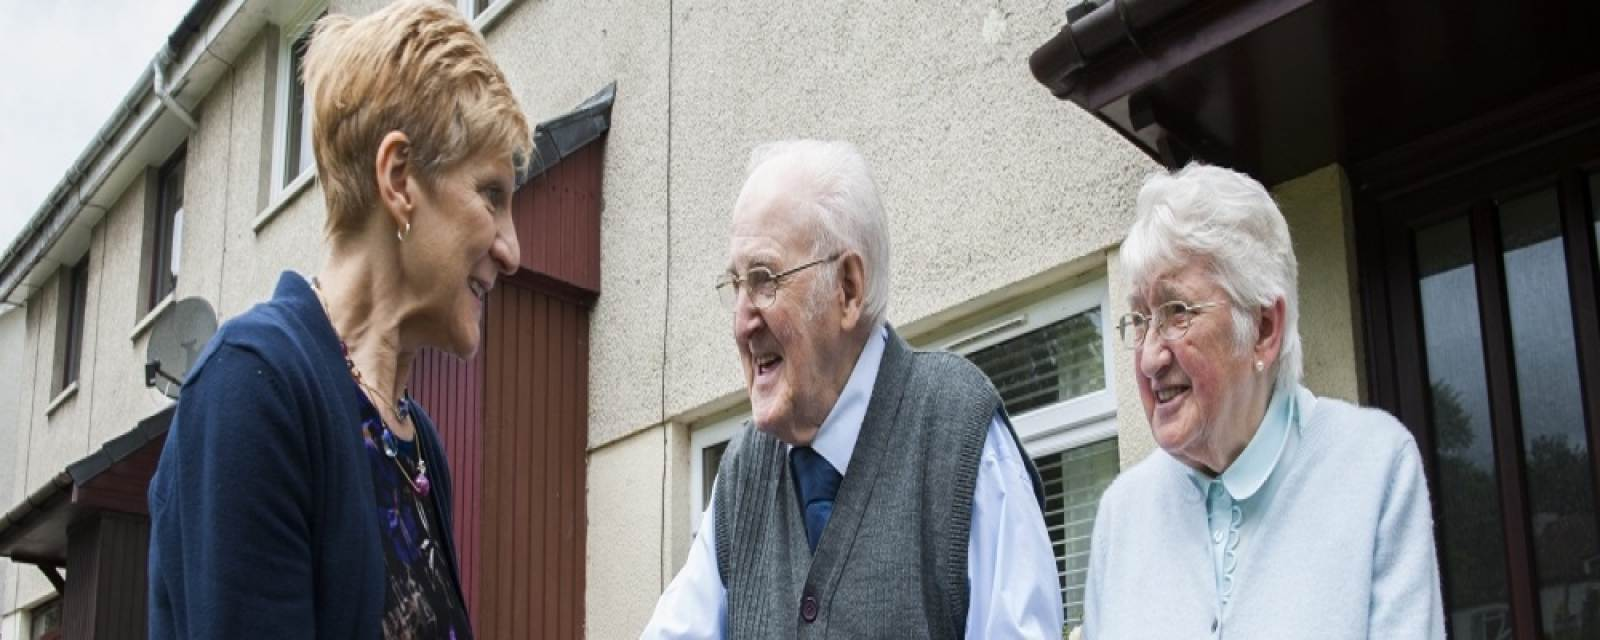 <p>We provide grants to projects helping older people stay independent and in their own homes.</p>